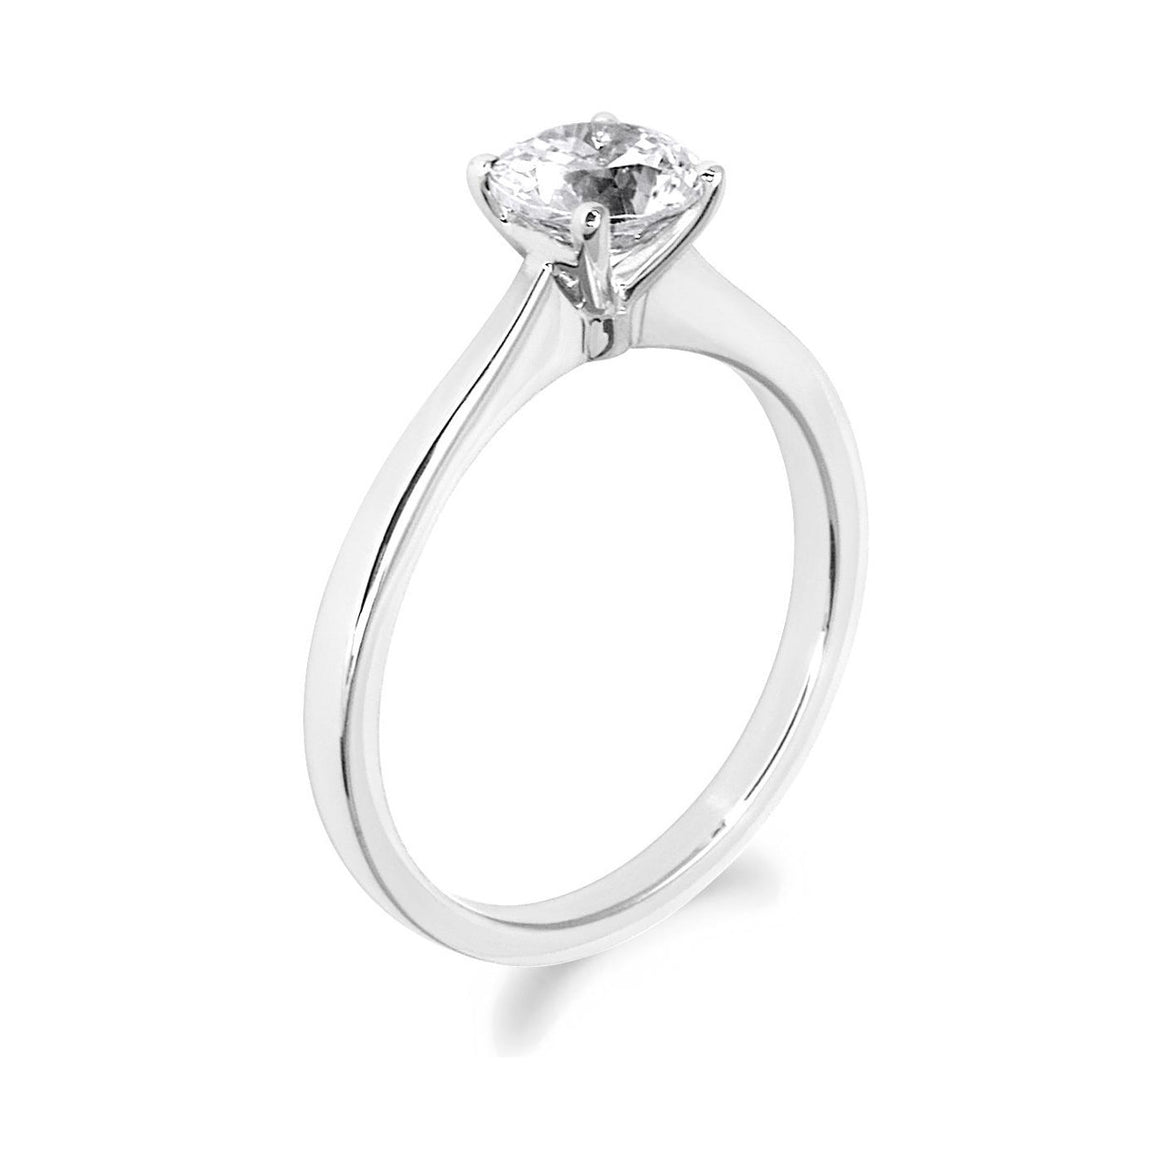 4 Claw Brilliant Cut 18ct White Gold Solitaire